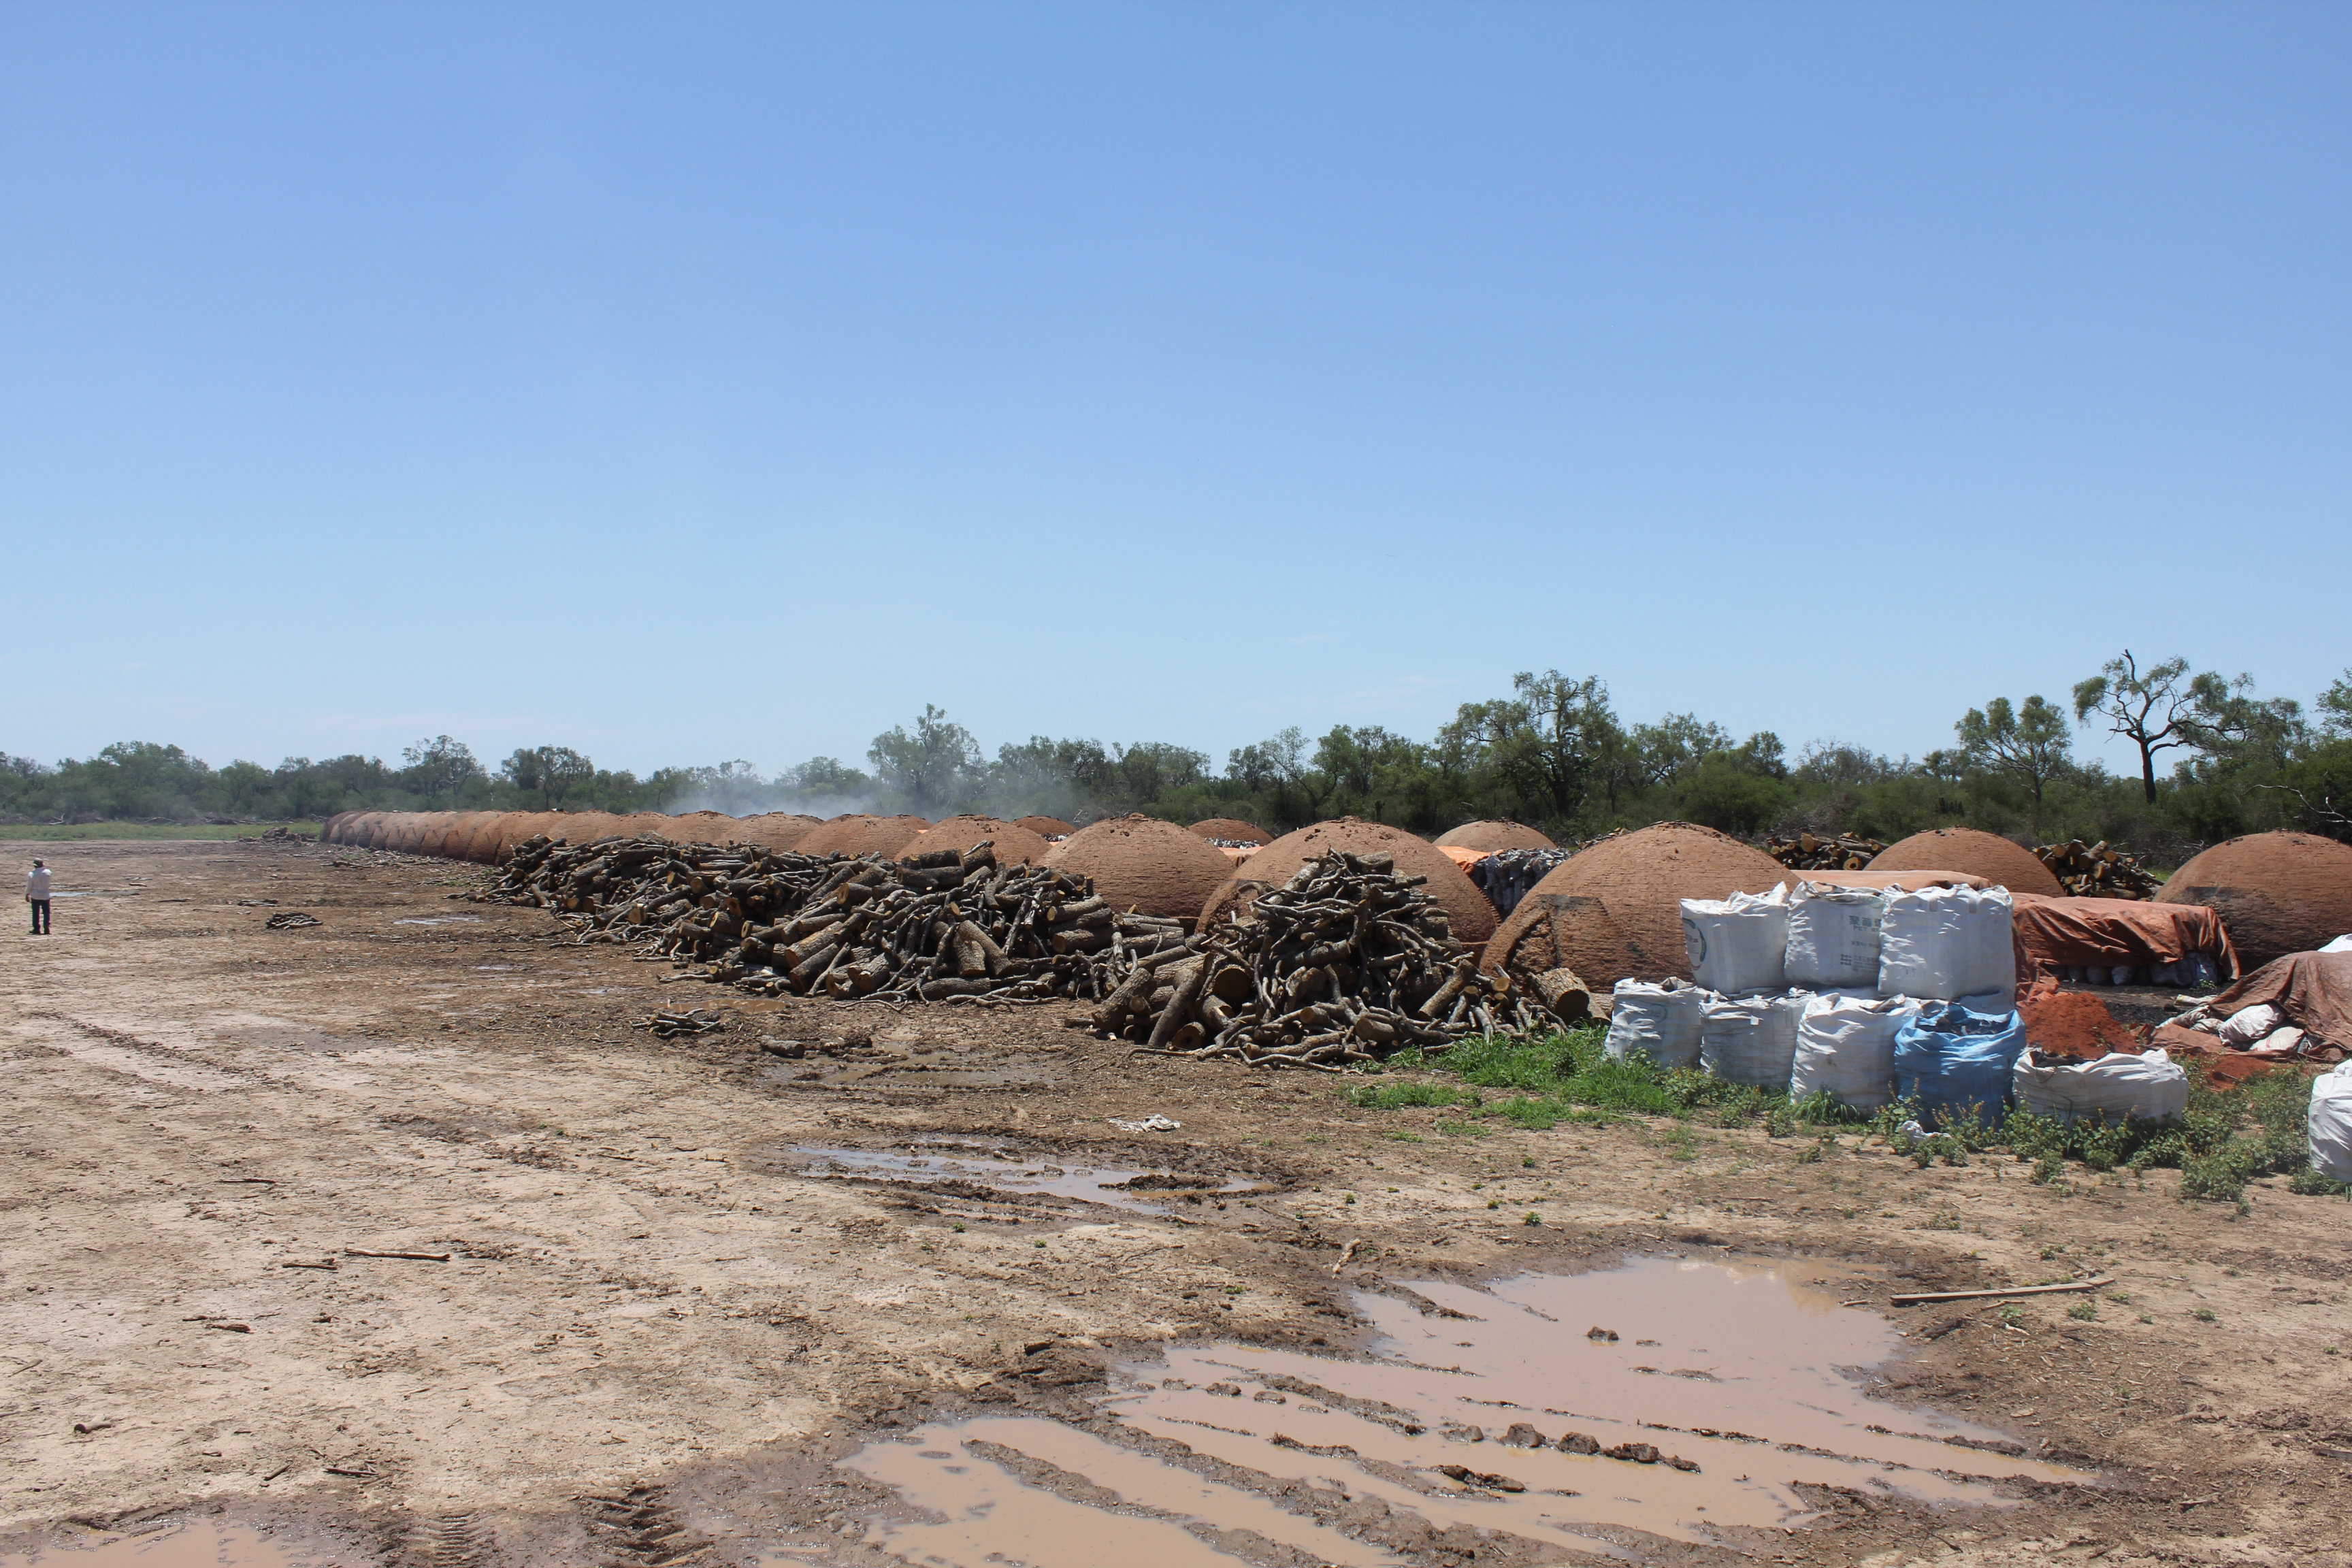 Earthsight's report linked European and US BBQ charcoal to a hidden deforestation crisis in Paraguay. Photo: Earthsight